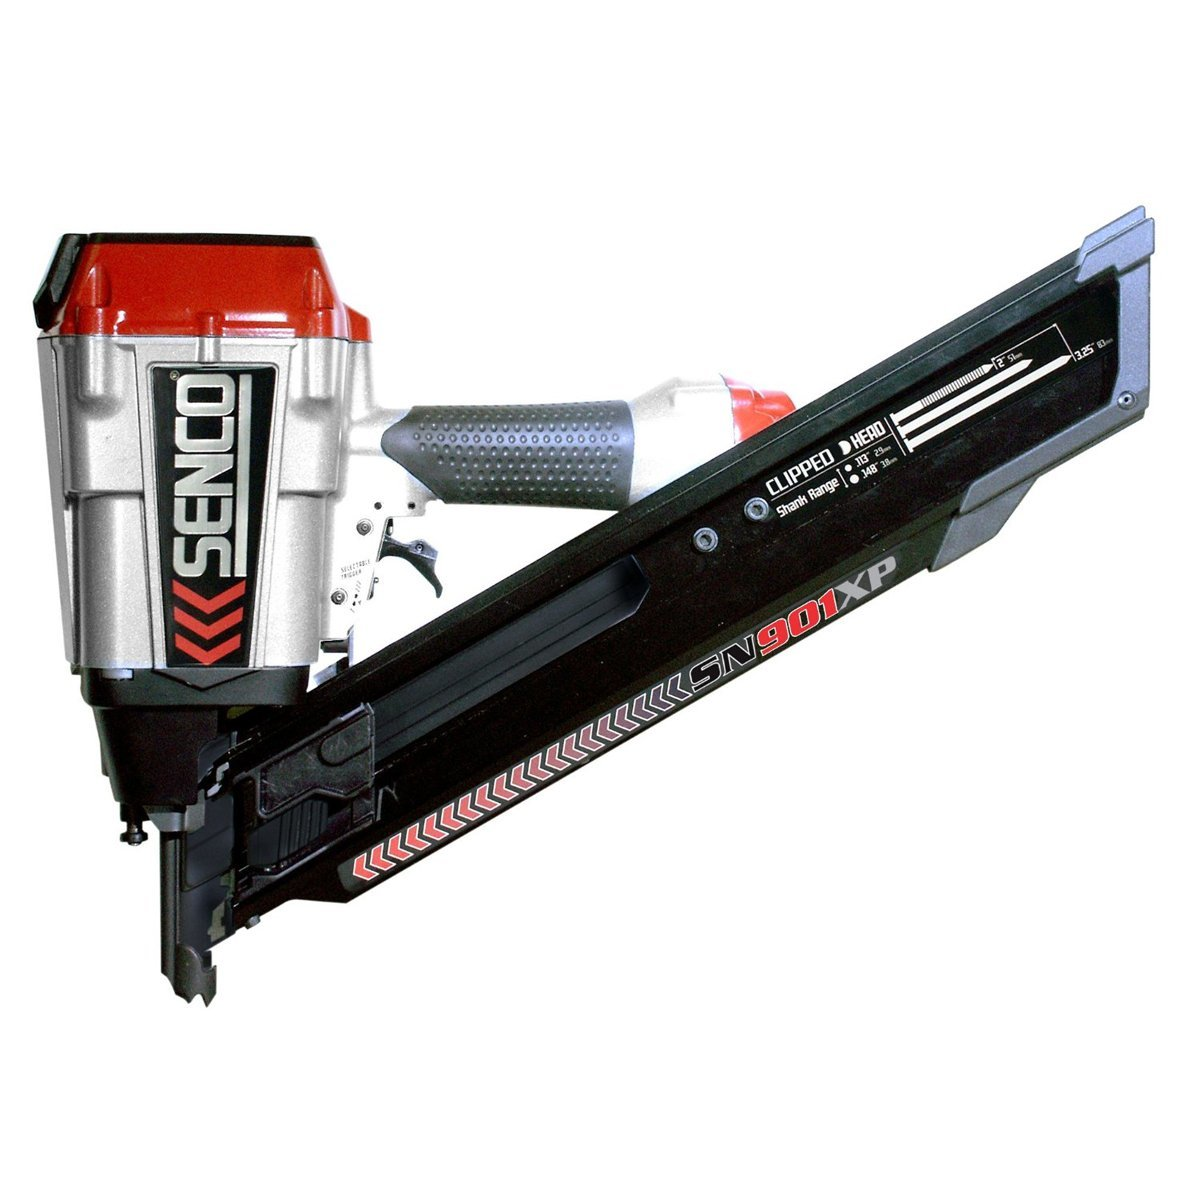 Senco 4Z0001N Clipped Head Framing Nailer